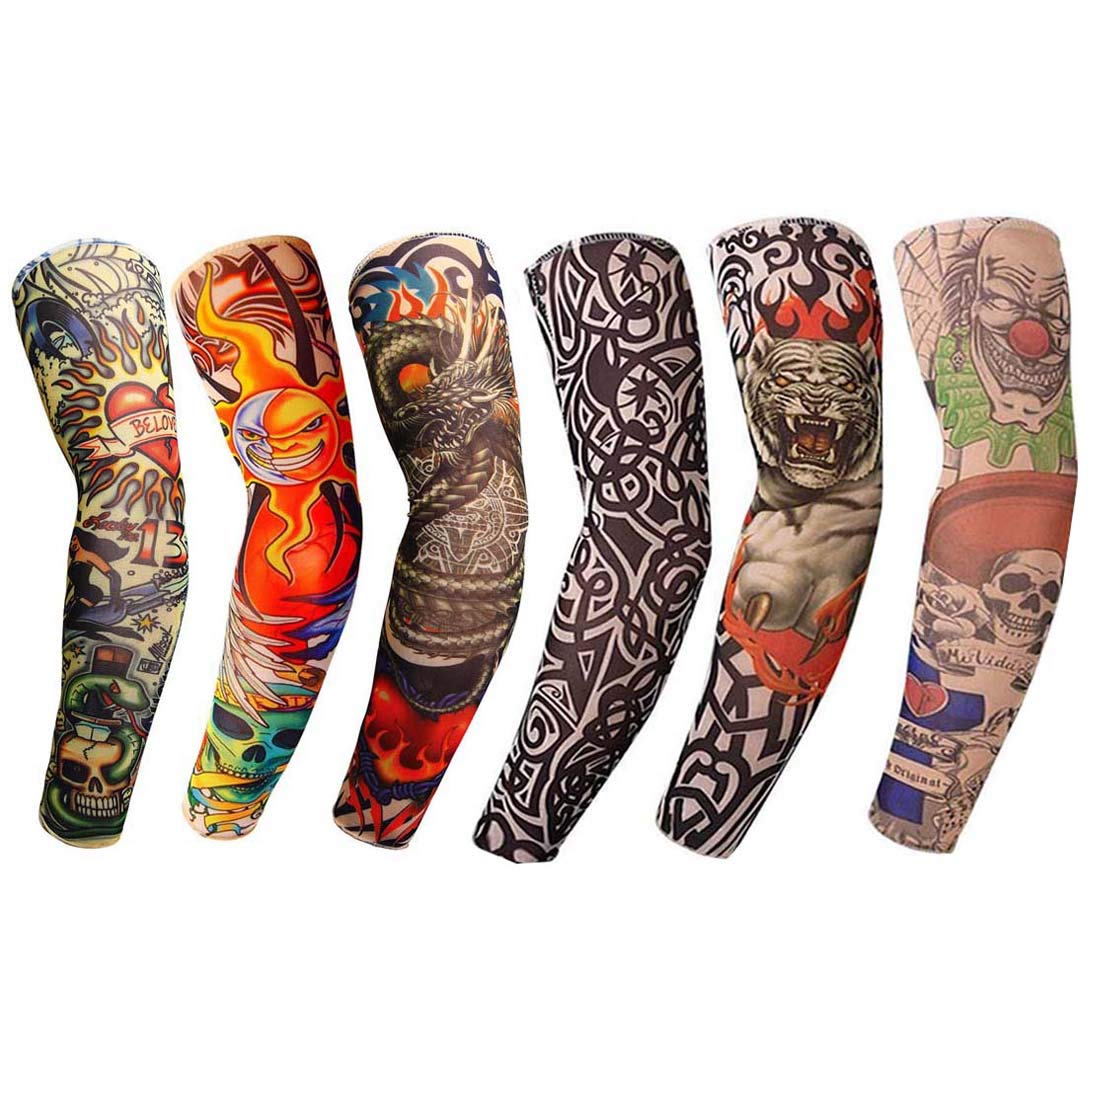 Amazon Com Tattoo Arm Sleeves 6pcs Fake Temporary Arm Tattoo Cover Up Sleeves Body Art Arm Stockings Slip Accessories For Men Women Designs Tribal Crown Heart Dragon Skull Unisex Stretchable Cosplay Accessorie